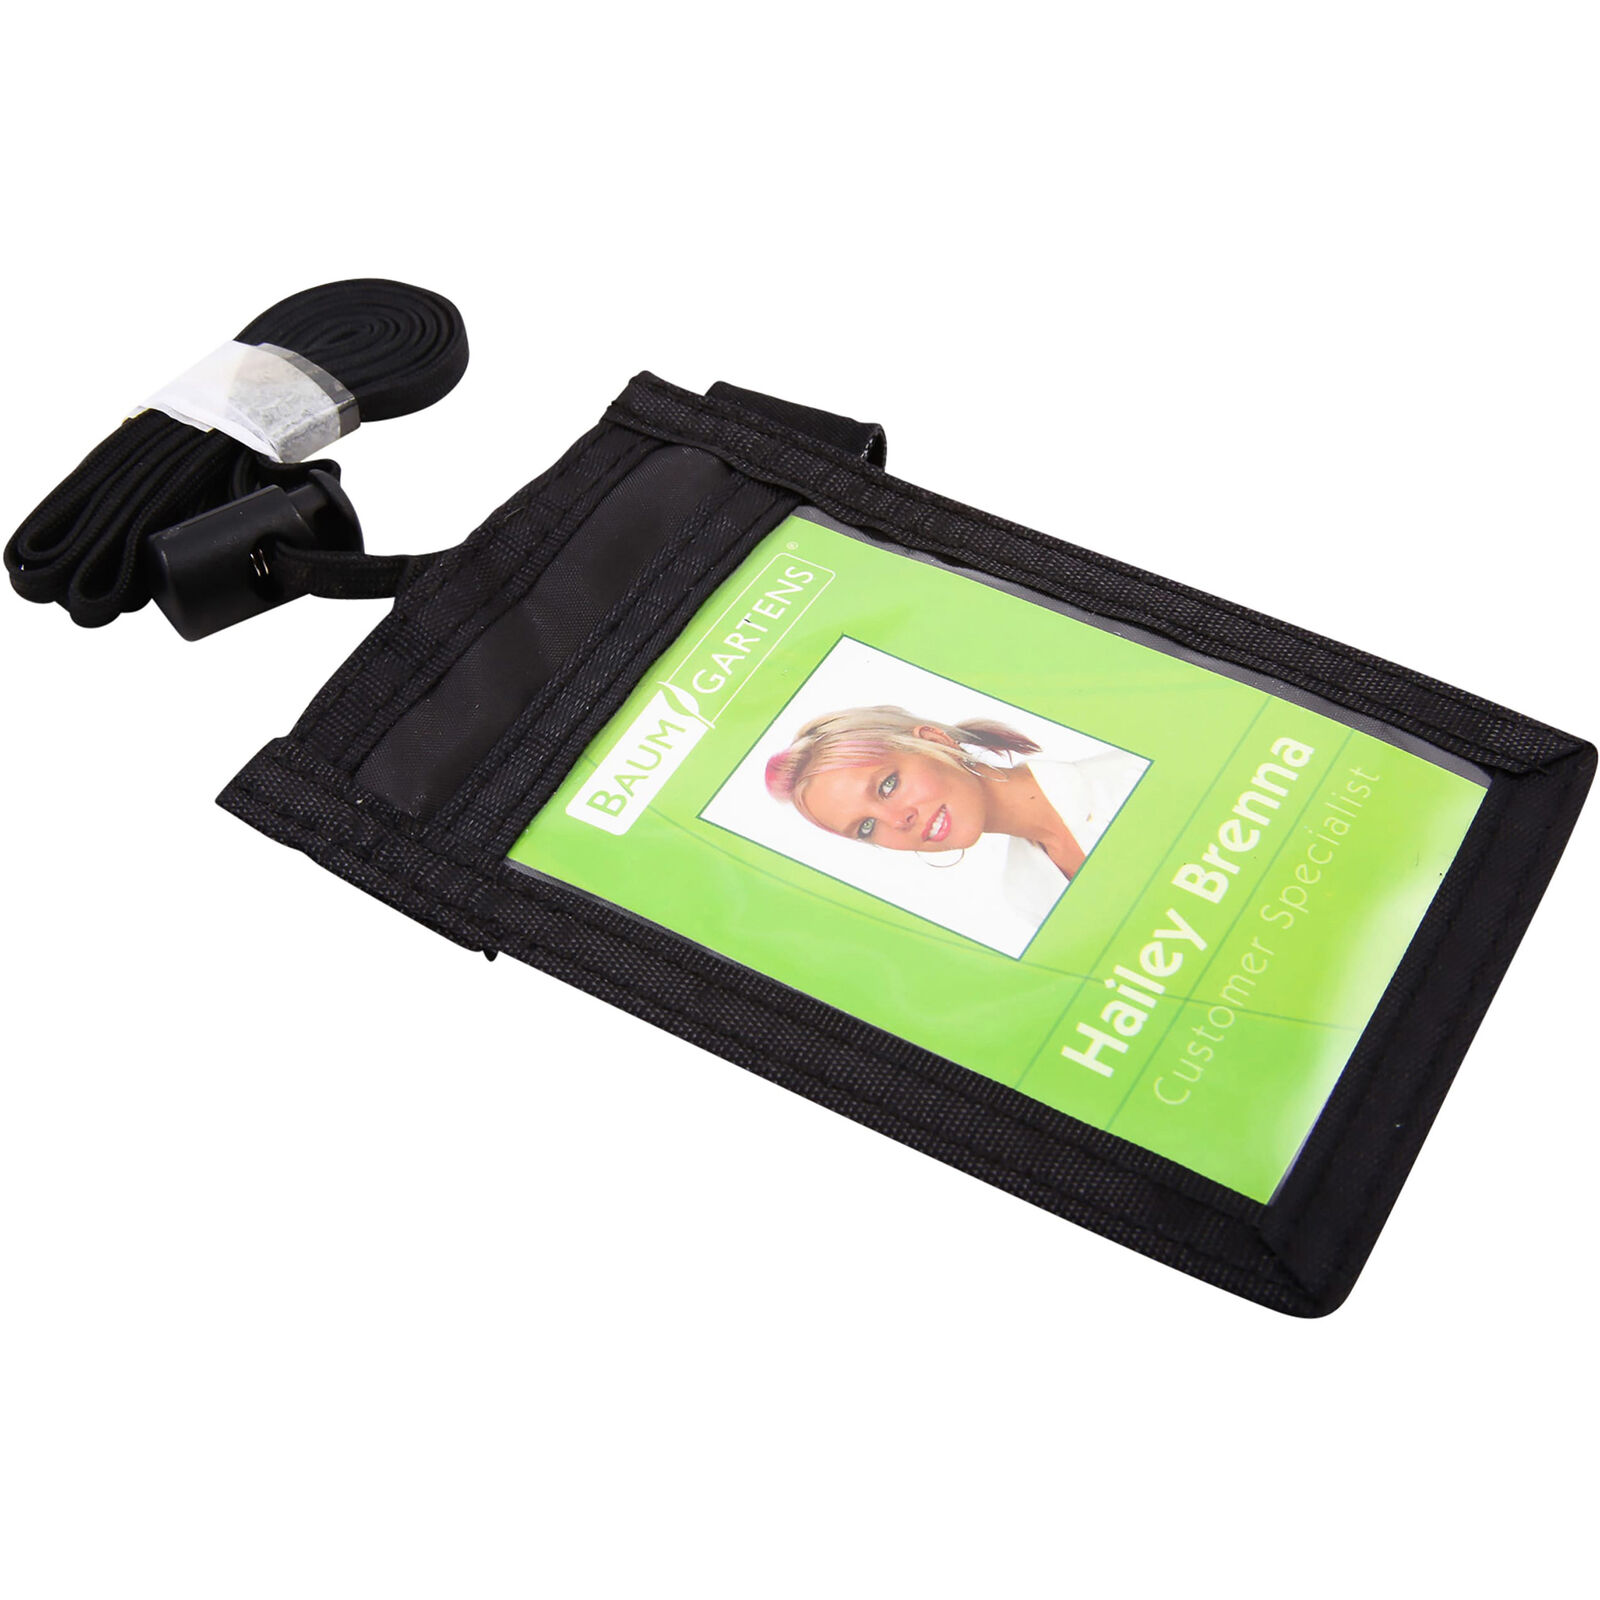 Baumgartens Carrying Case [pouch] For Business Card - Black - Nylon (BAU55120)